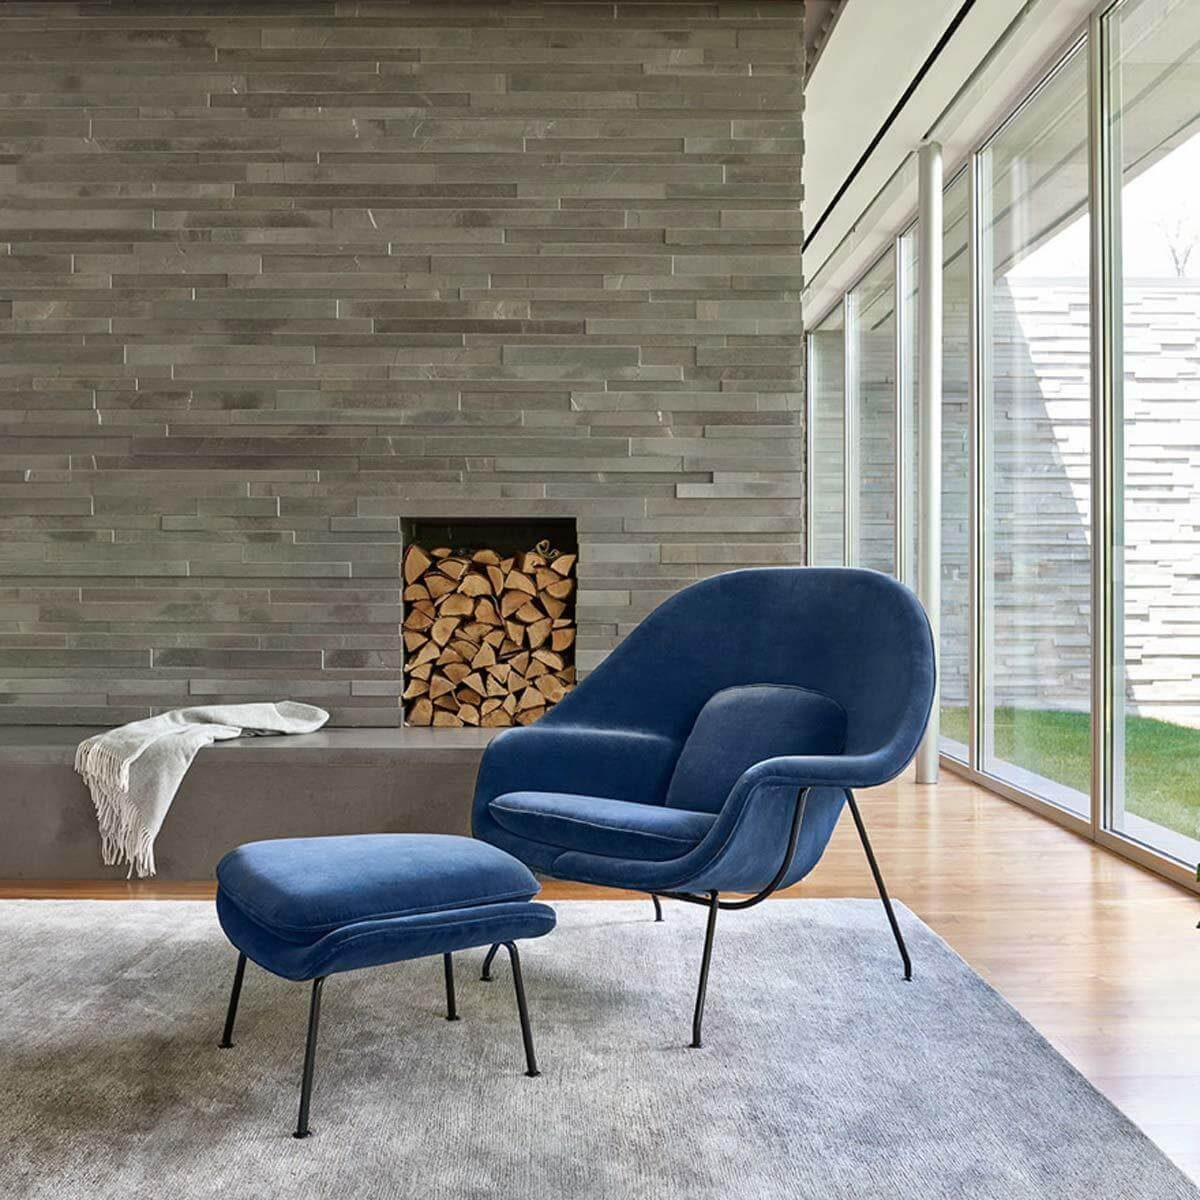 14 Iconic Mid-Century Modern Decor Elements | Family Handyman